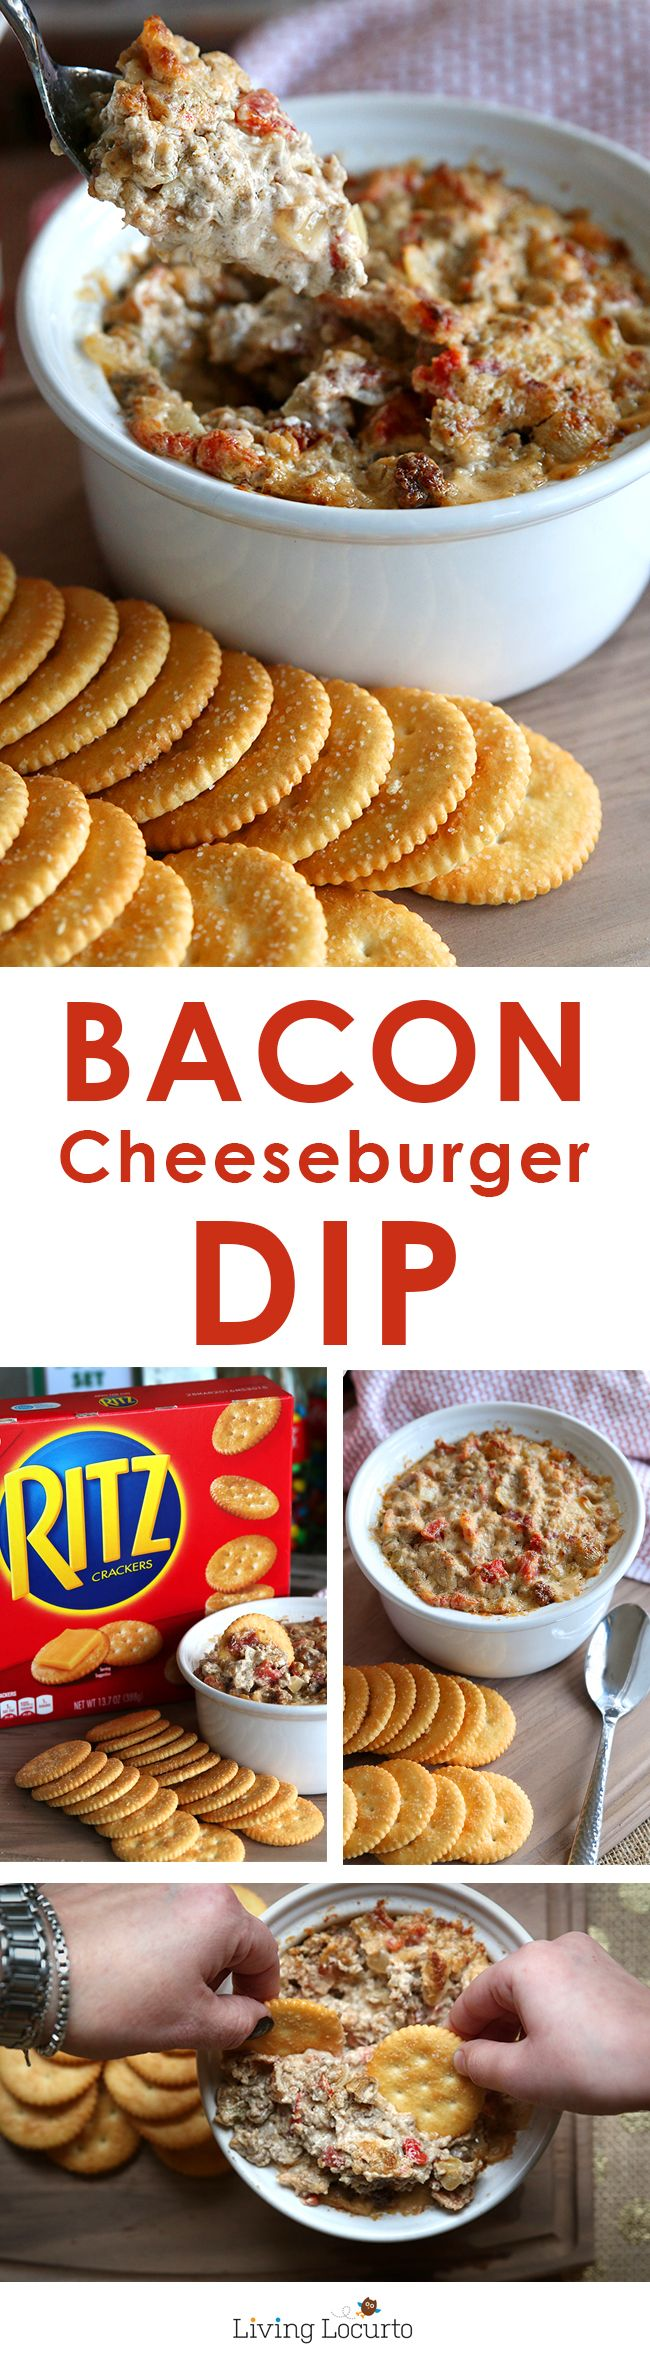 Easy and Delicious Bacon Cheeseburger Dip! It's super addictive, watch out… you might end up eating the whole bowl of dip yourself! A perfect recipe for watching football or making for your next party. LivingLocurto.com  #iworkwithcoke ad